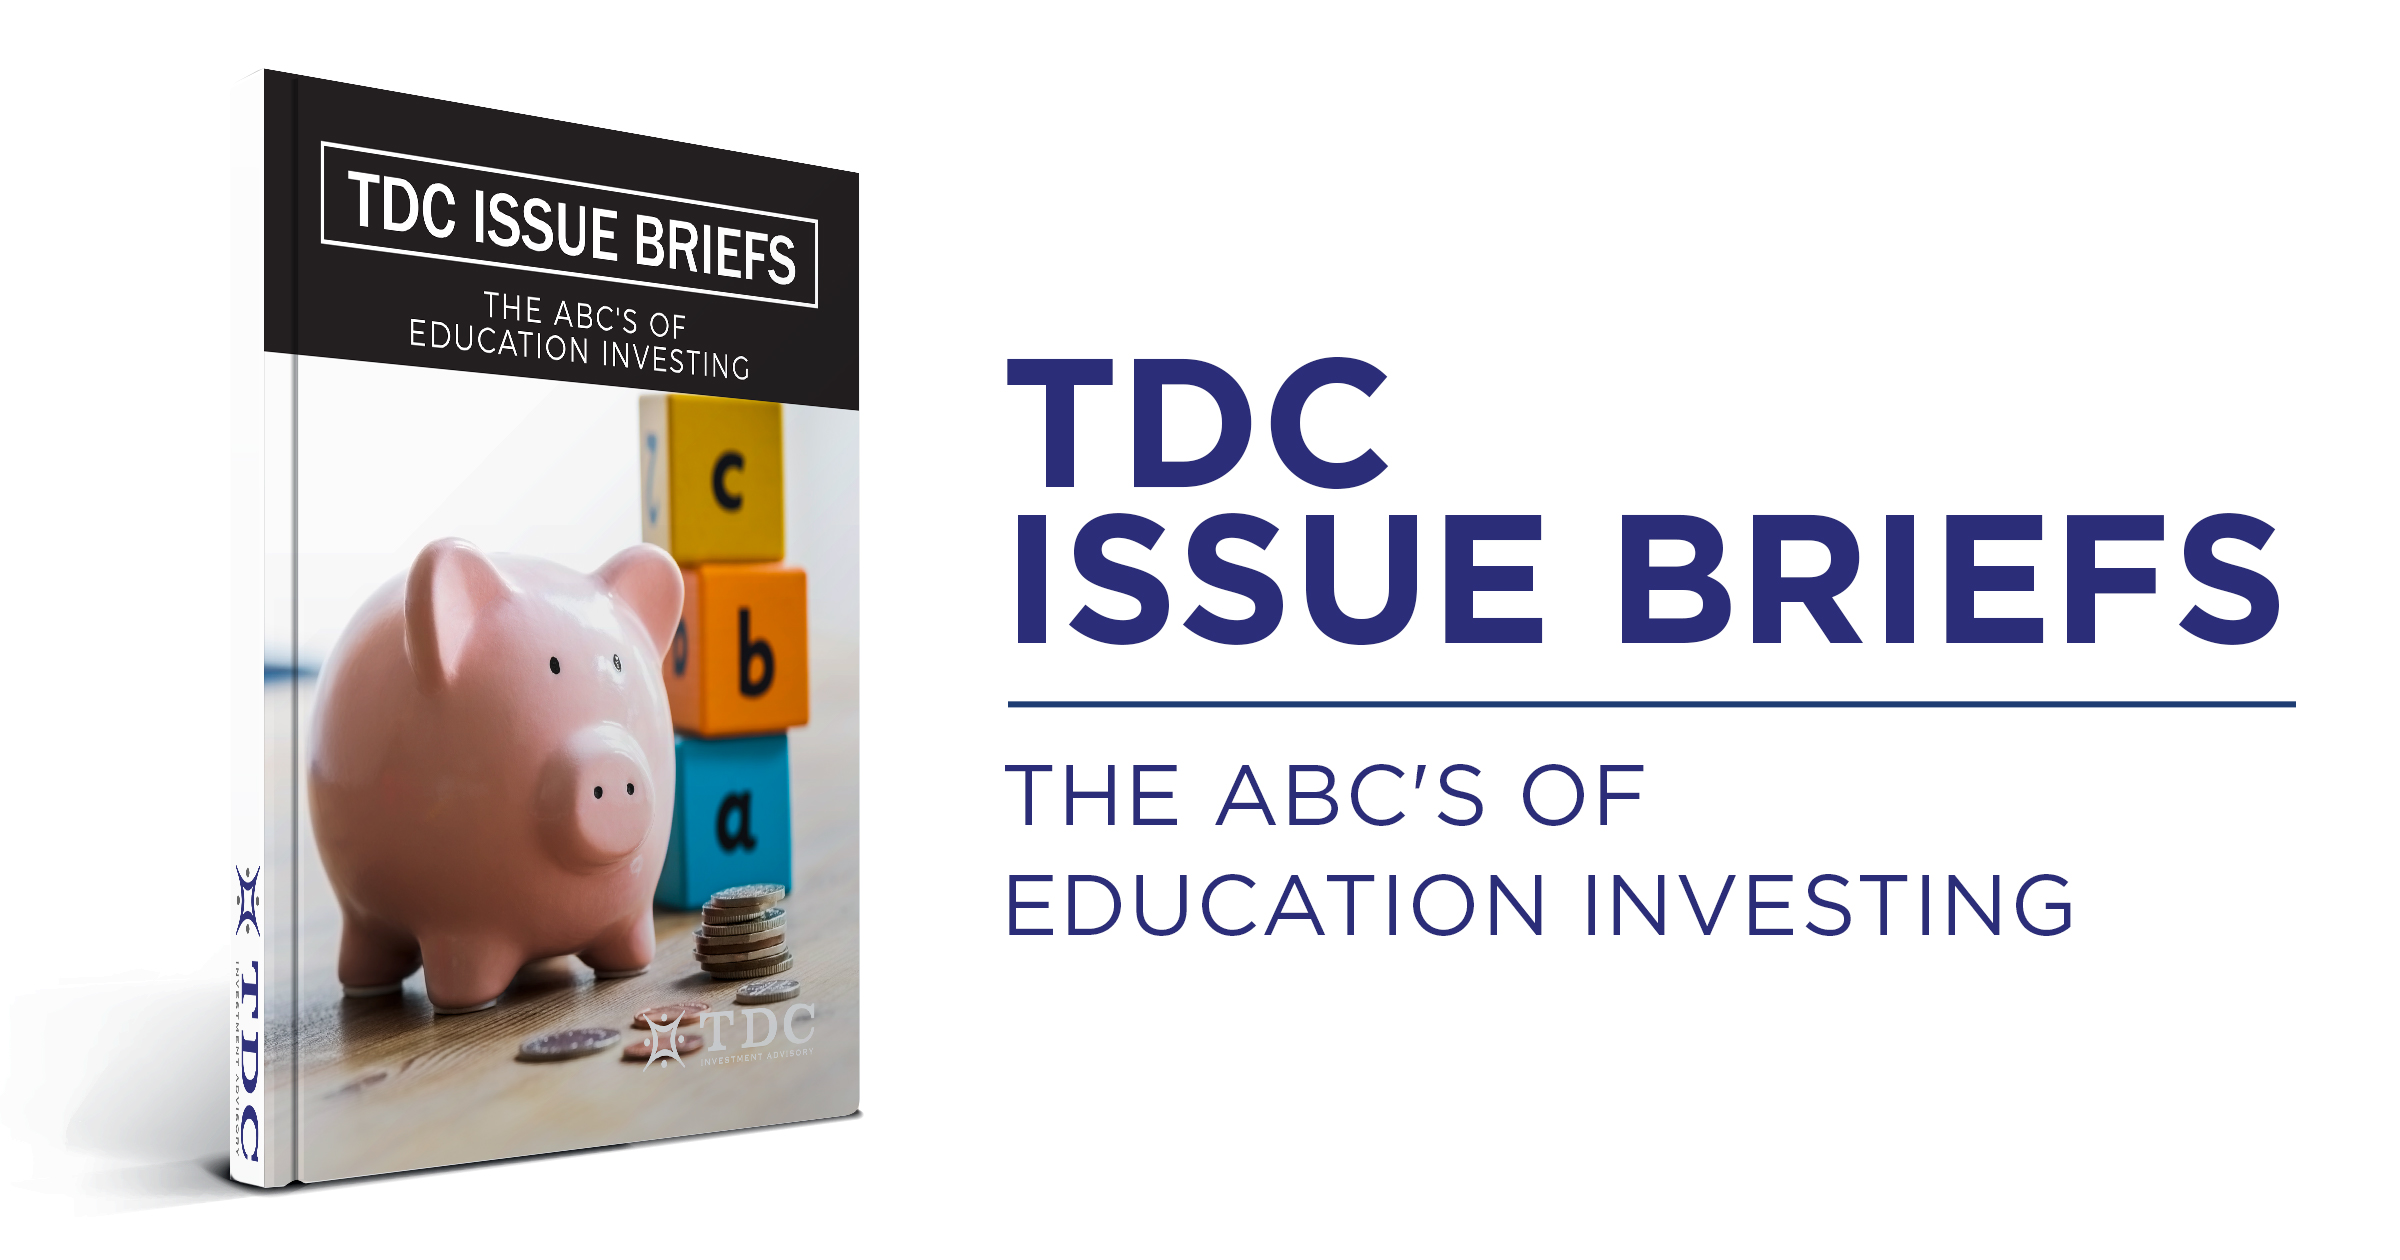 The ABC's of Education Investing